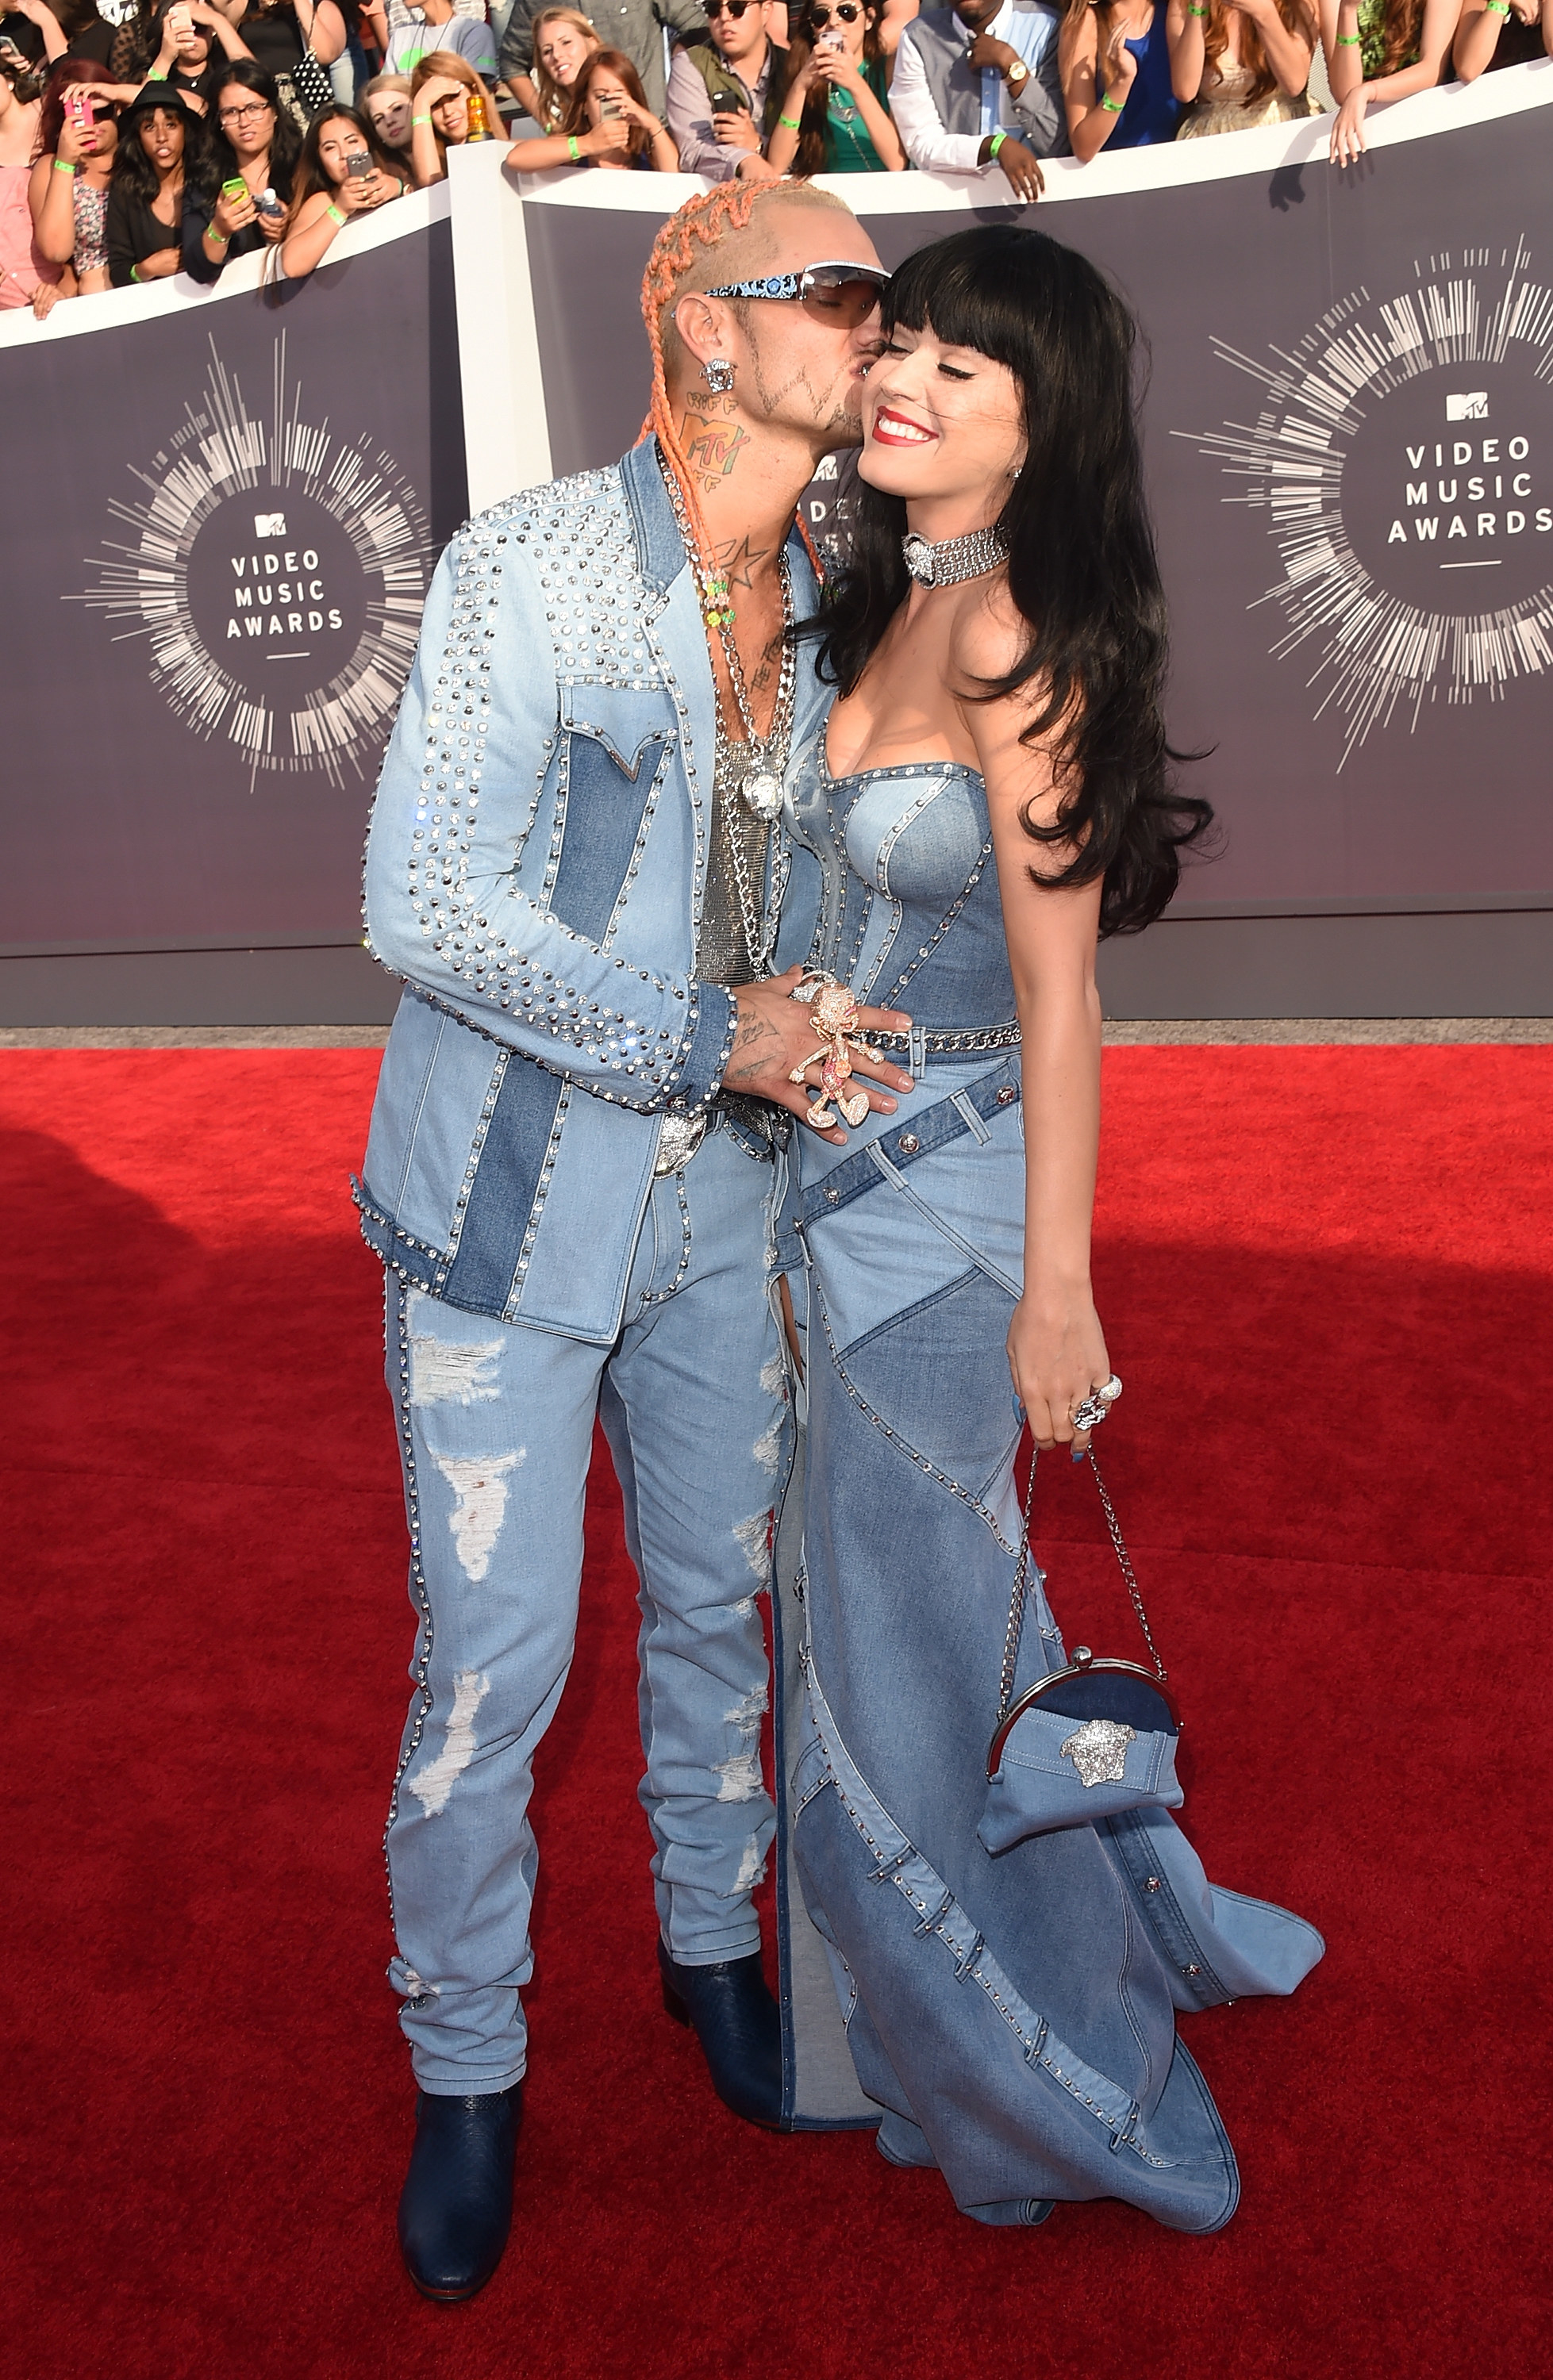 Katy Perry and Riff Raff at the Video Music Awards in 2014